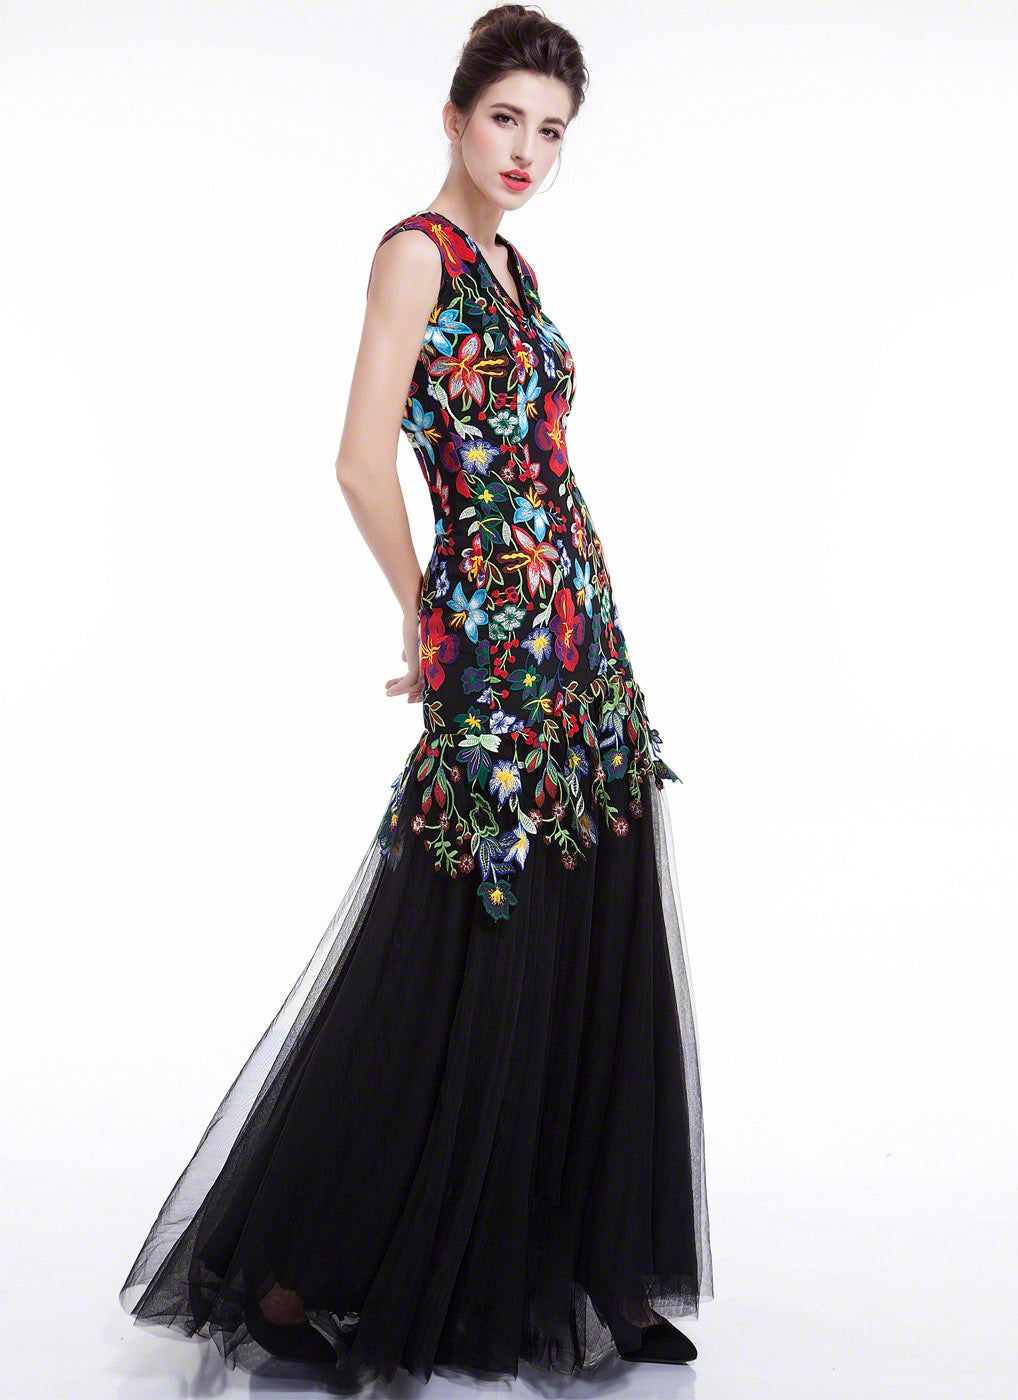 Colorful Floral Embroidery Mermaid Silhouette Black Maxi Evening Dress